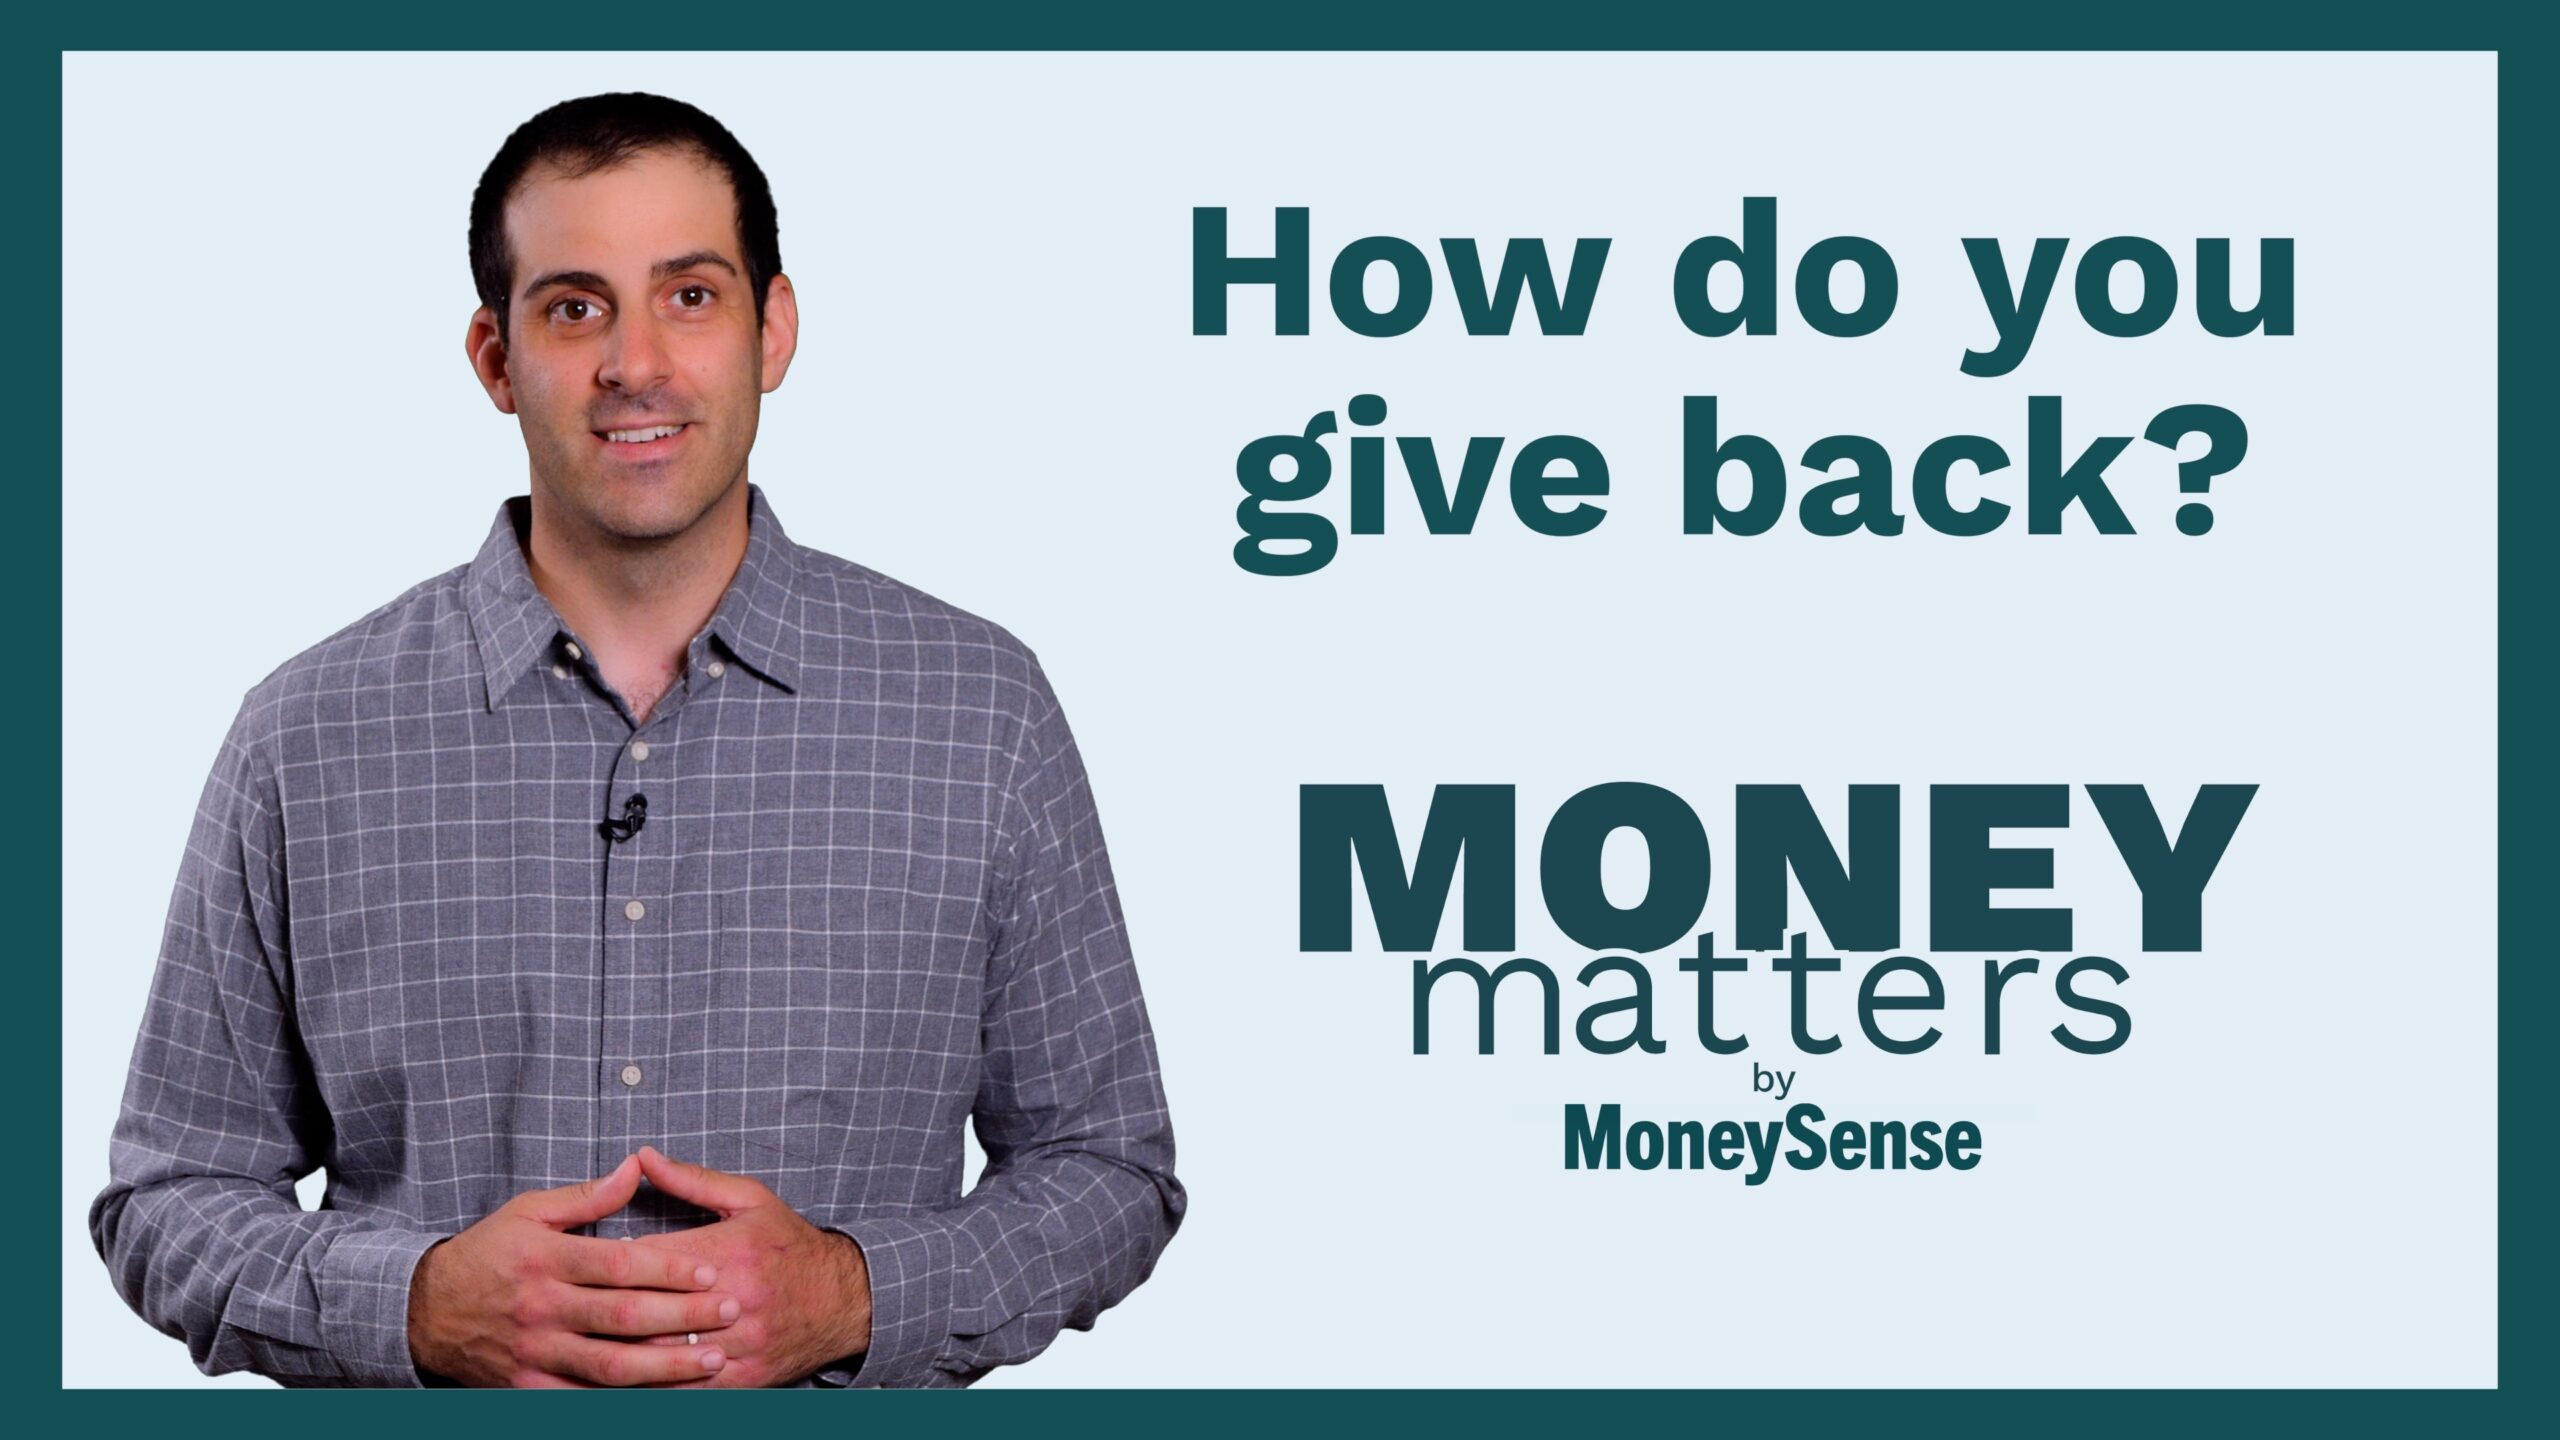 money matters how do you give back